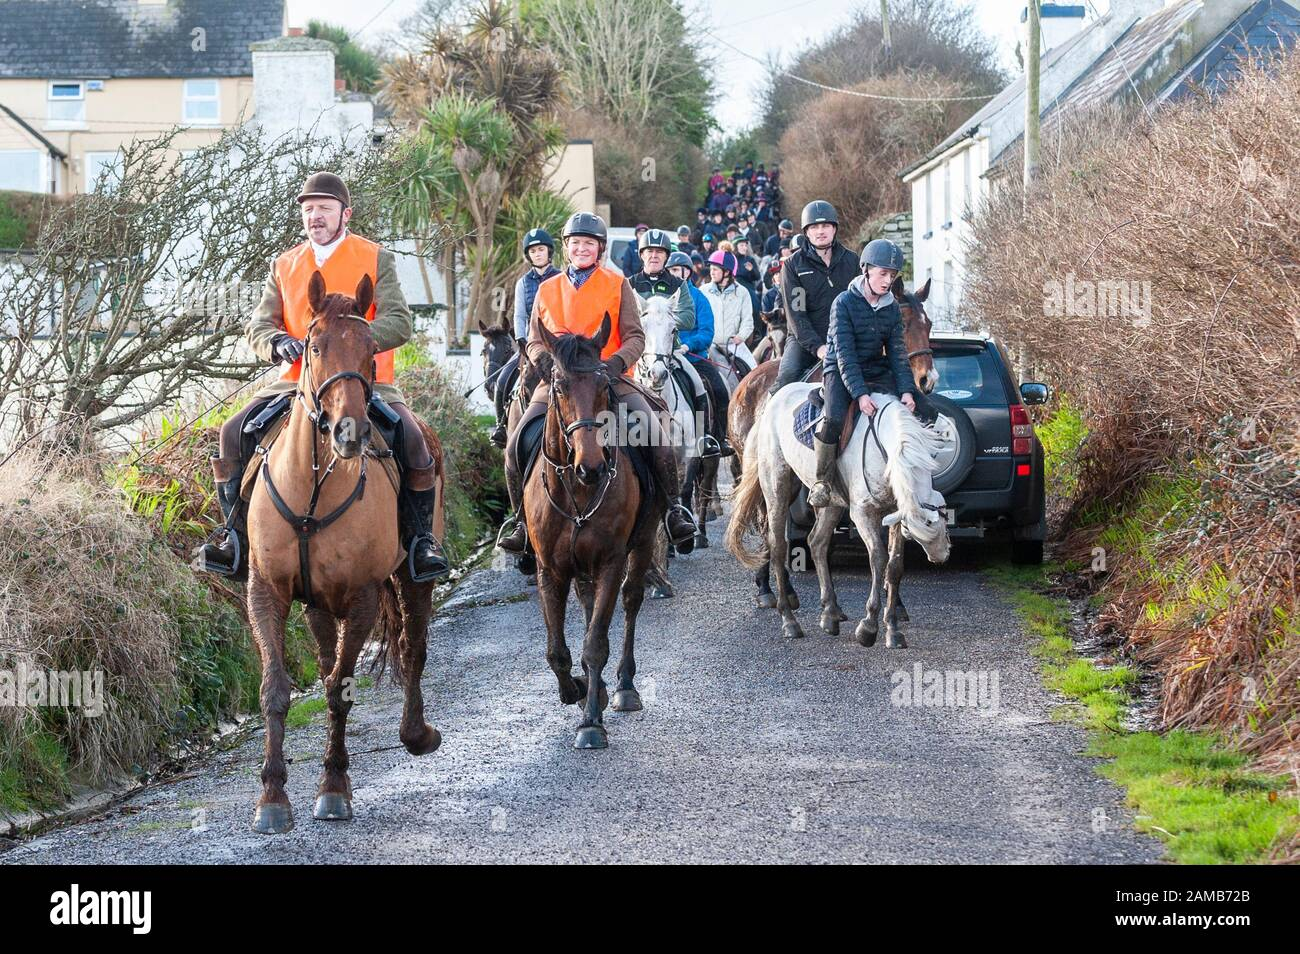 butlerstown-west-cork-ireland-12th-jan-2020-the-annual-carberry-hunt-butlerstown-fun-ride-took-place-today-with-hundreds-of-horses-and-riders-taking-part-the-horses-approach-the-beach-at-broadstrand-credit-andy-gibsonalamy-live-news-2AMB72B.jpg